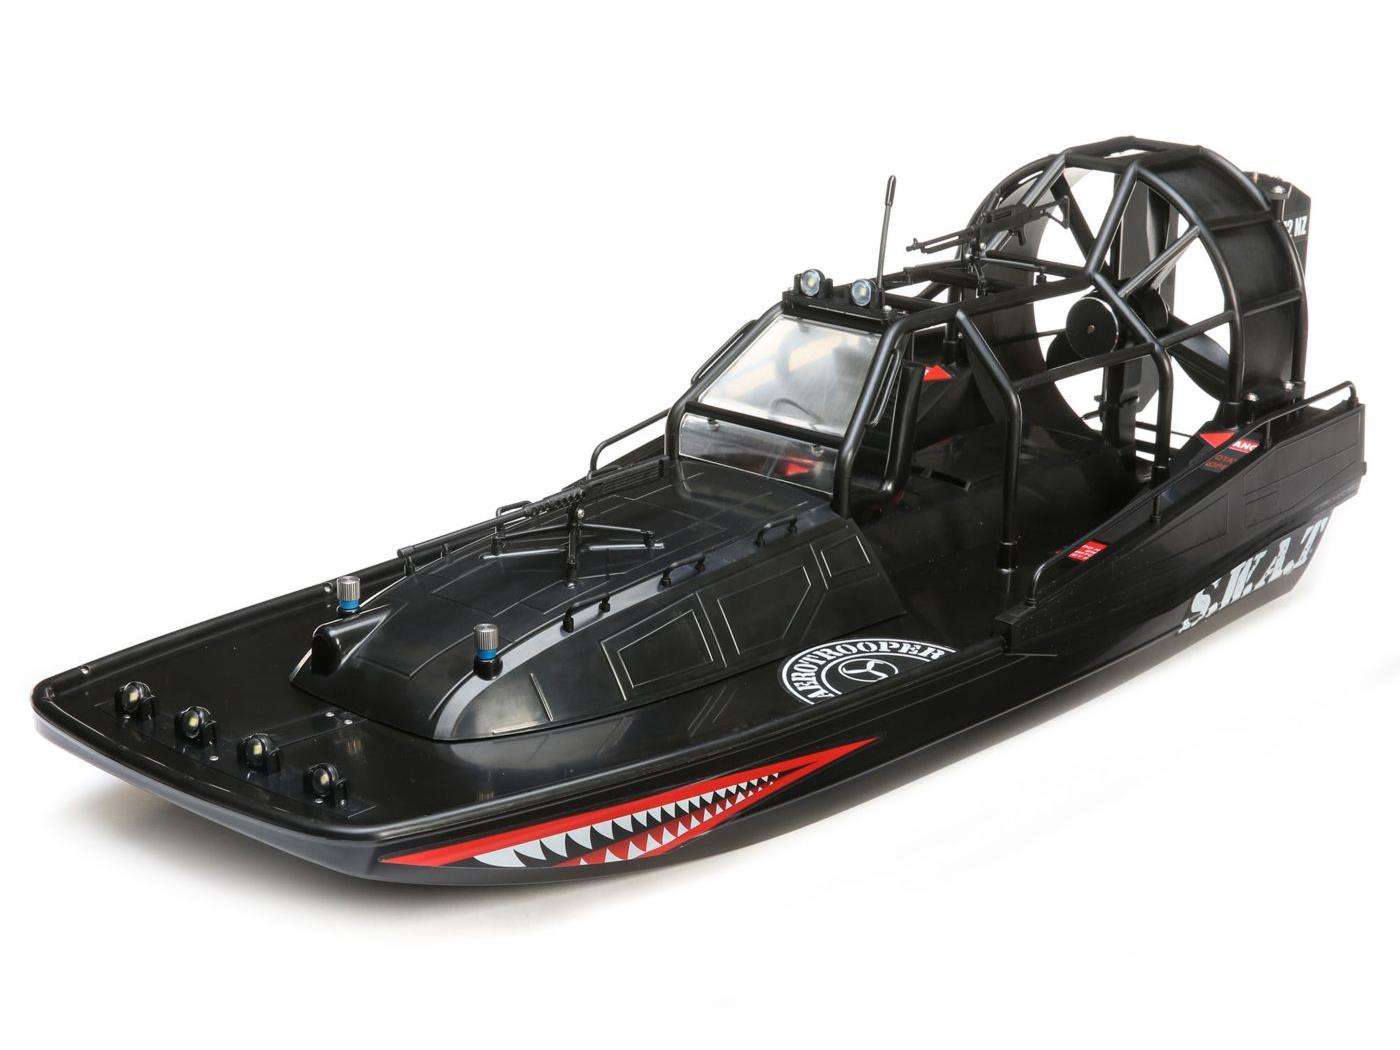 Aerotrooper 25 inch Brushless Airboat RTR